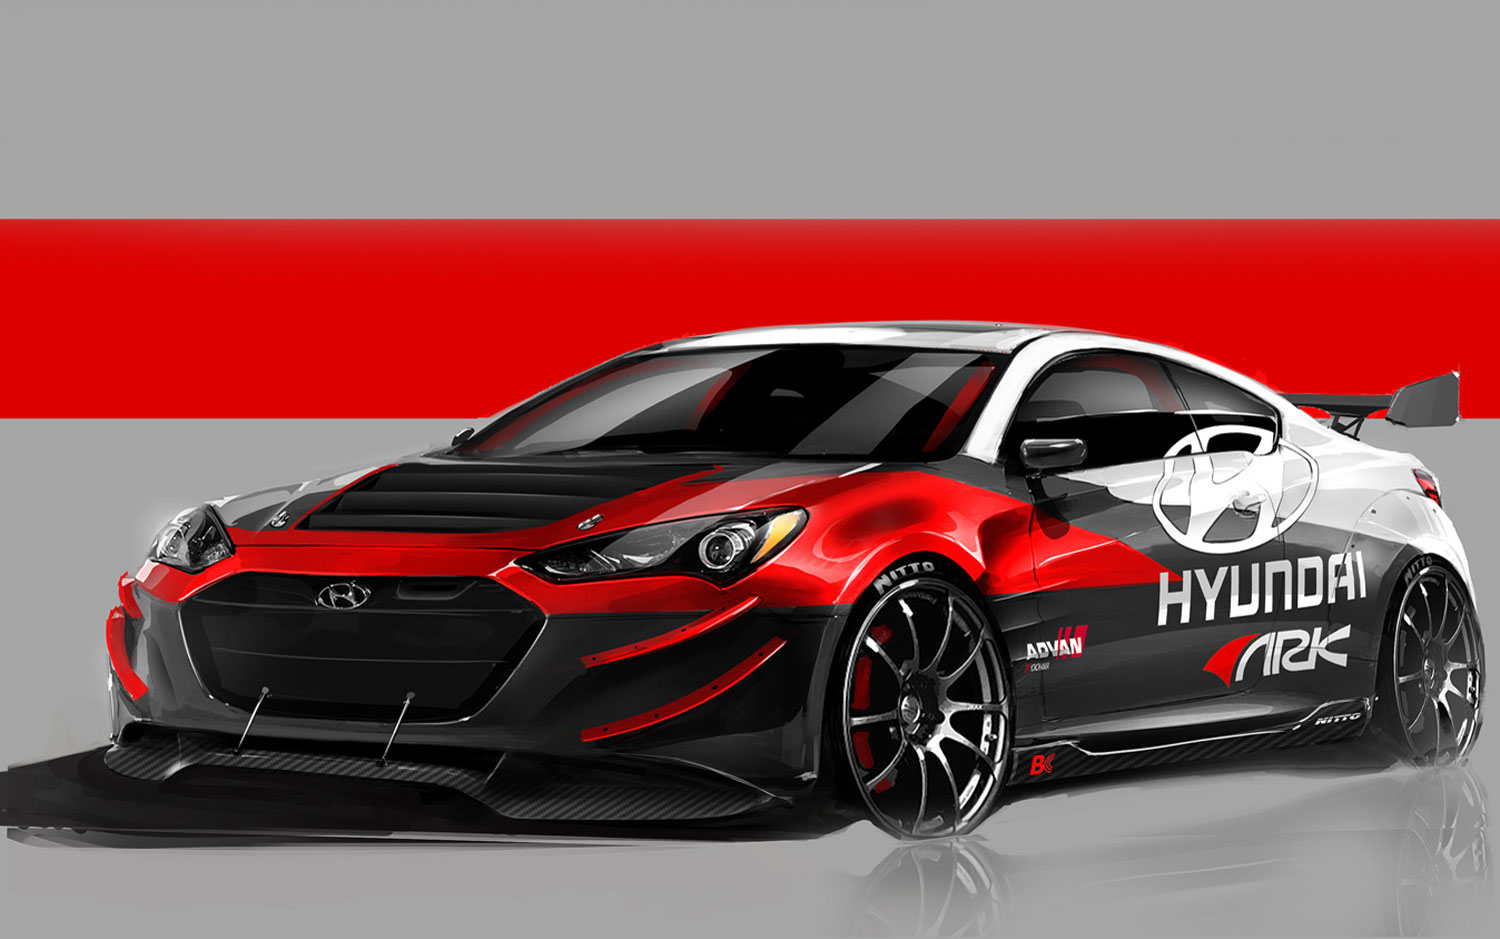 2016 hyundai genesis pictures information and specs auto database com